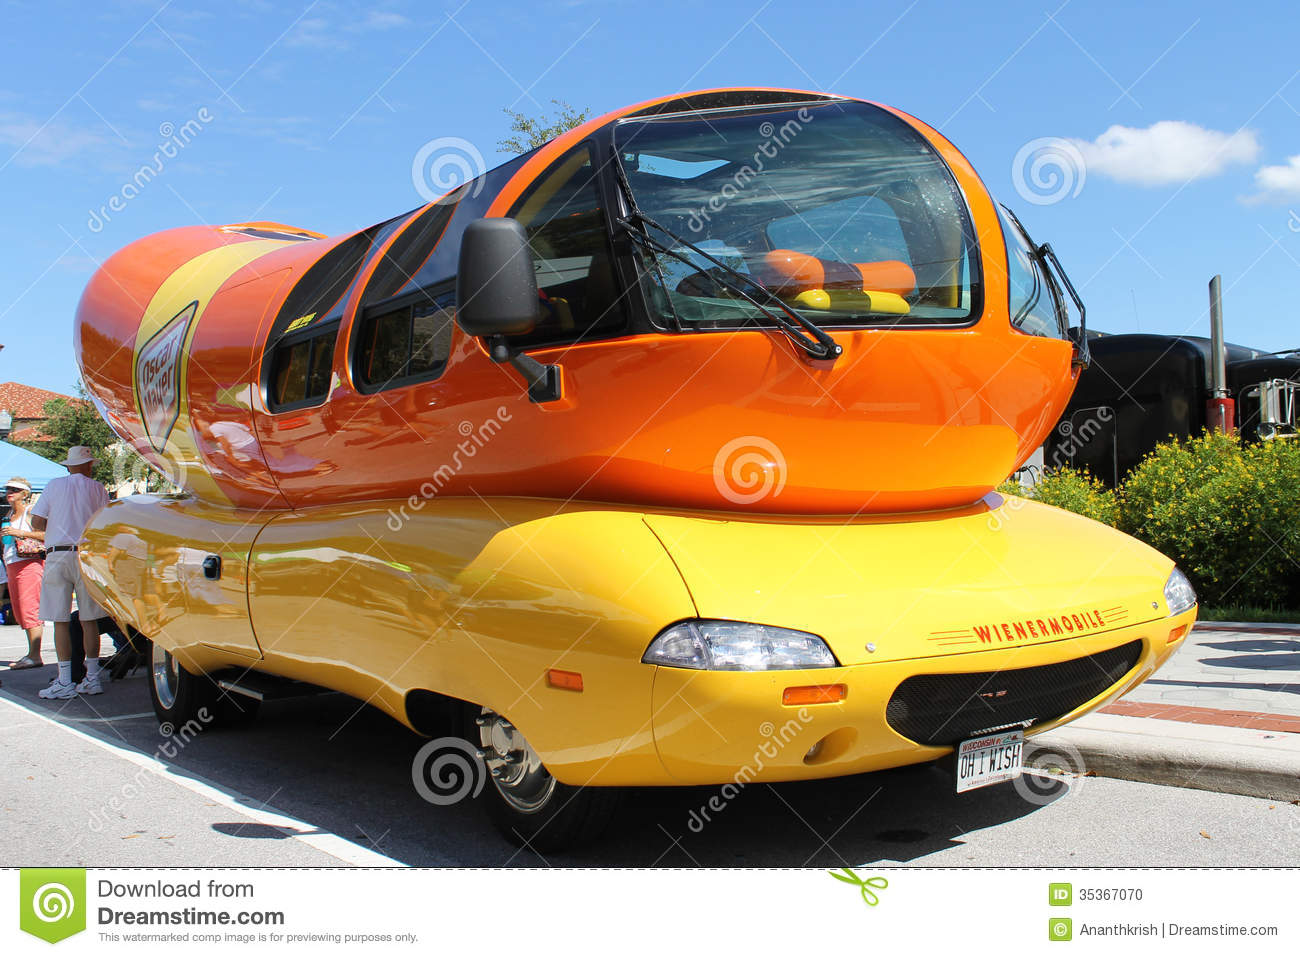 Wienermobile At The Car Show Editorial Image Image Of Lakeland - Car show florida